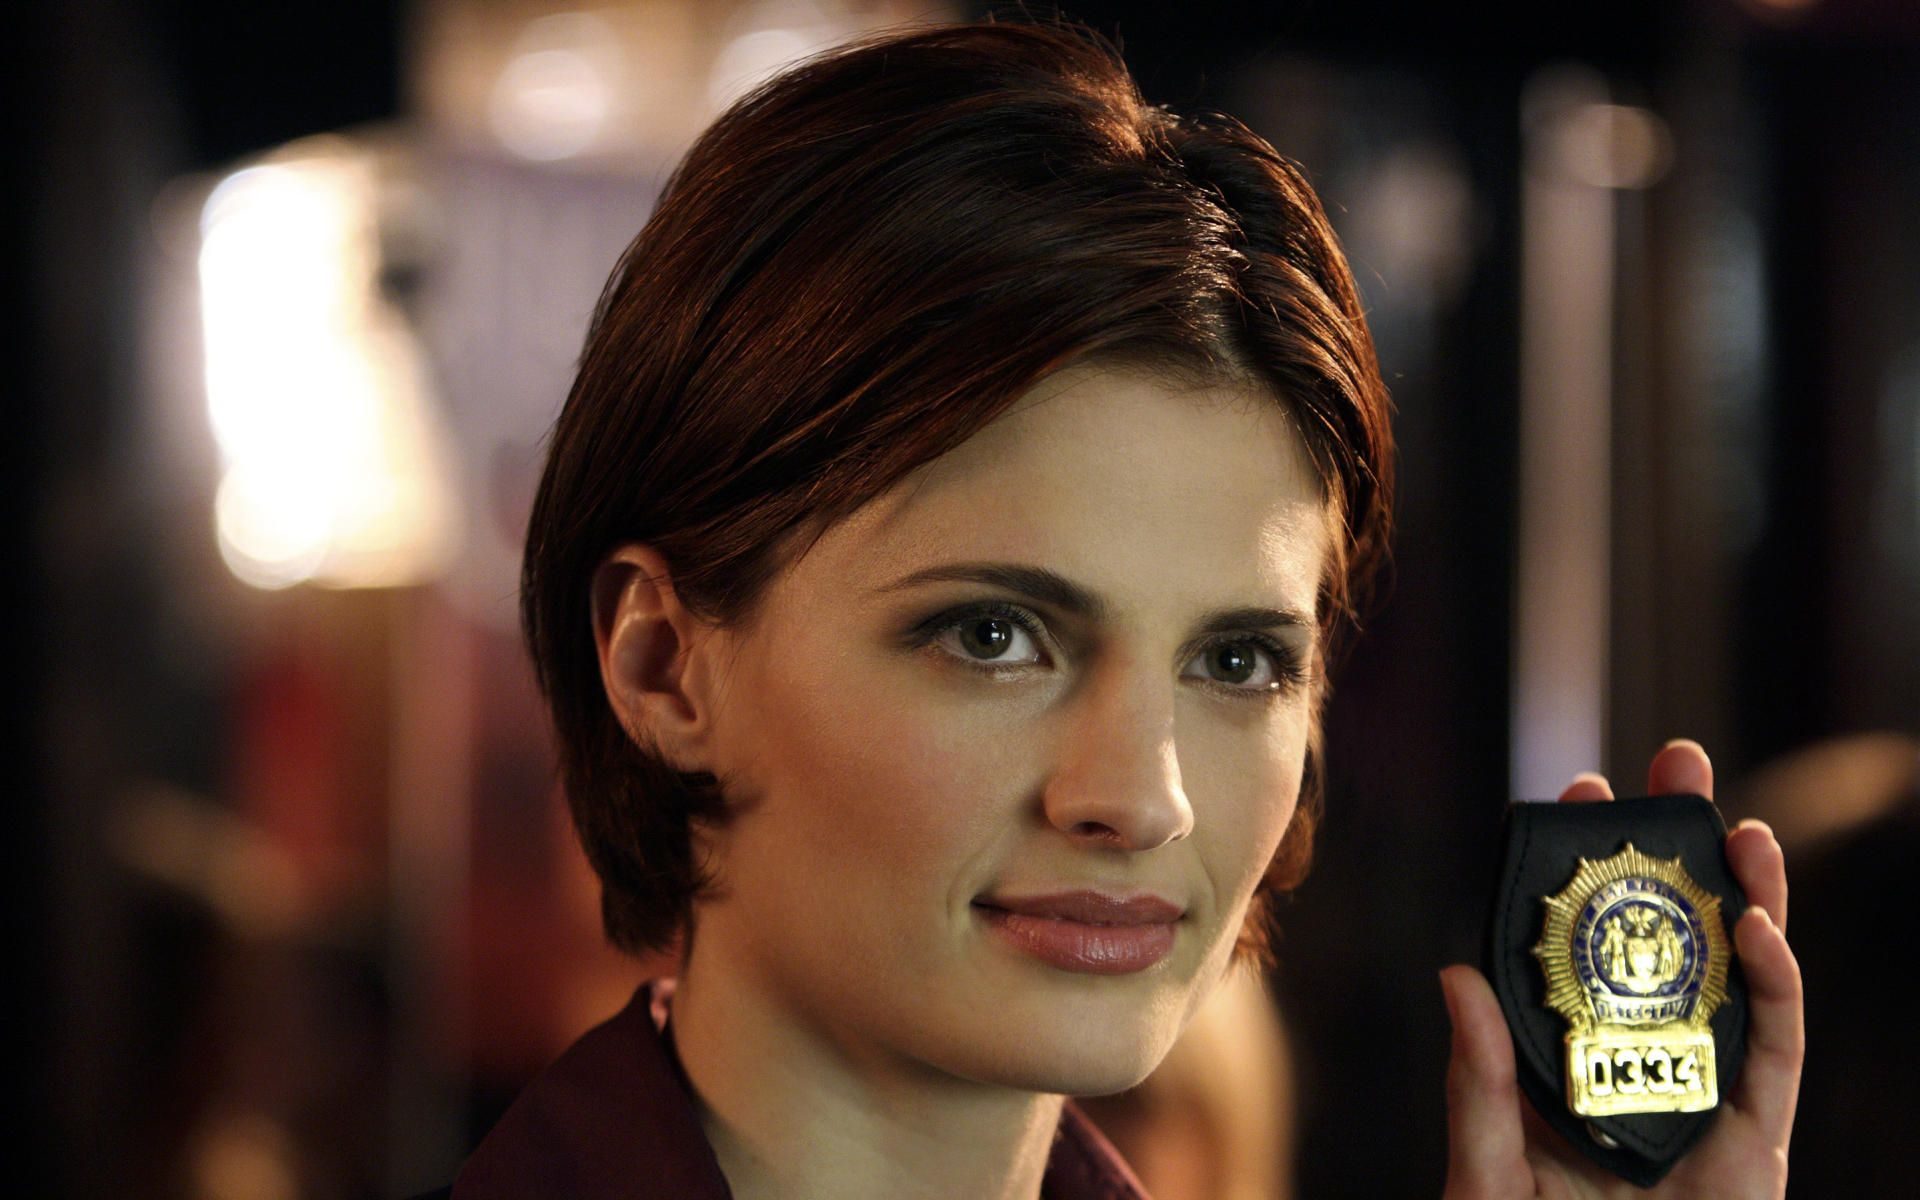 stana katic as eve dallas | in death characters | pinterest